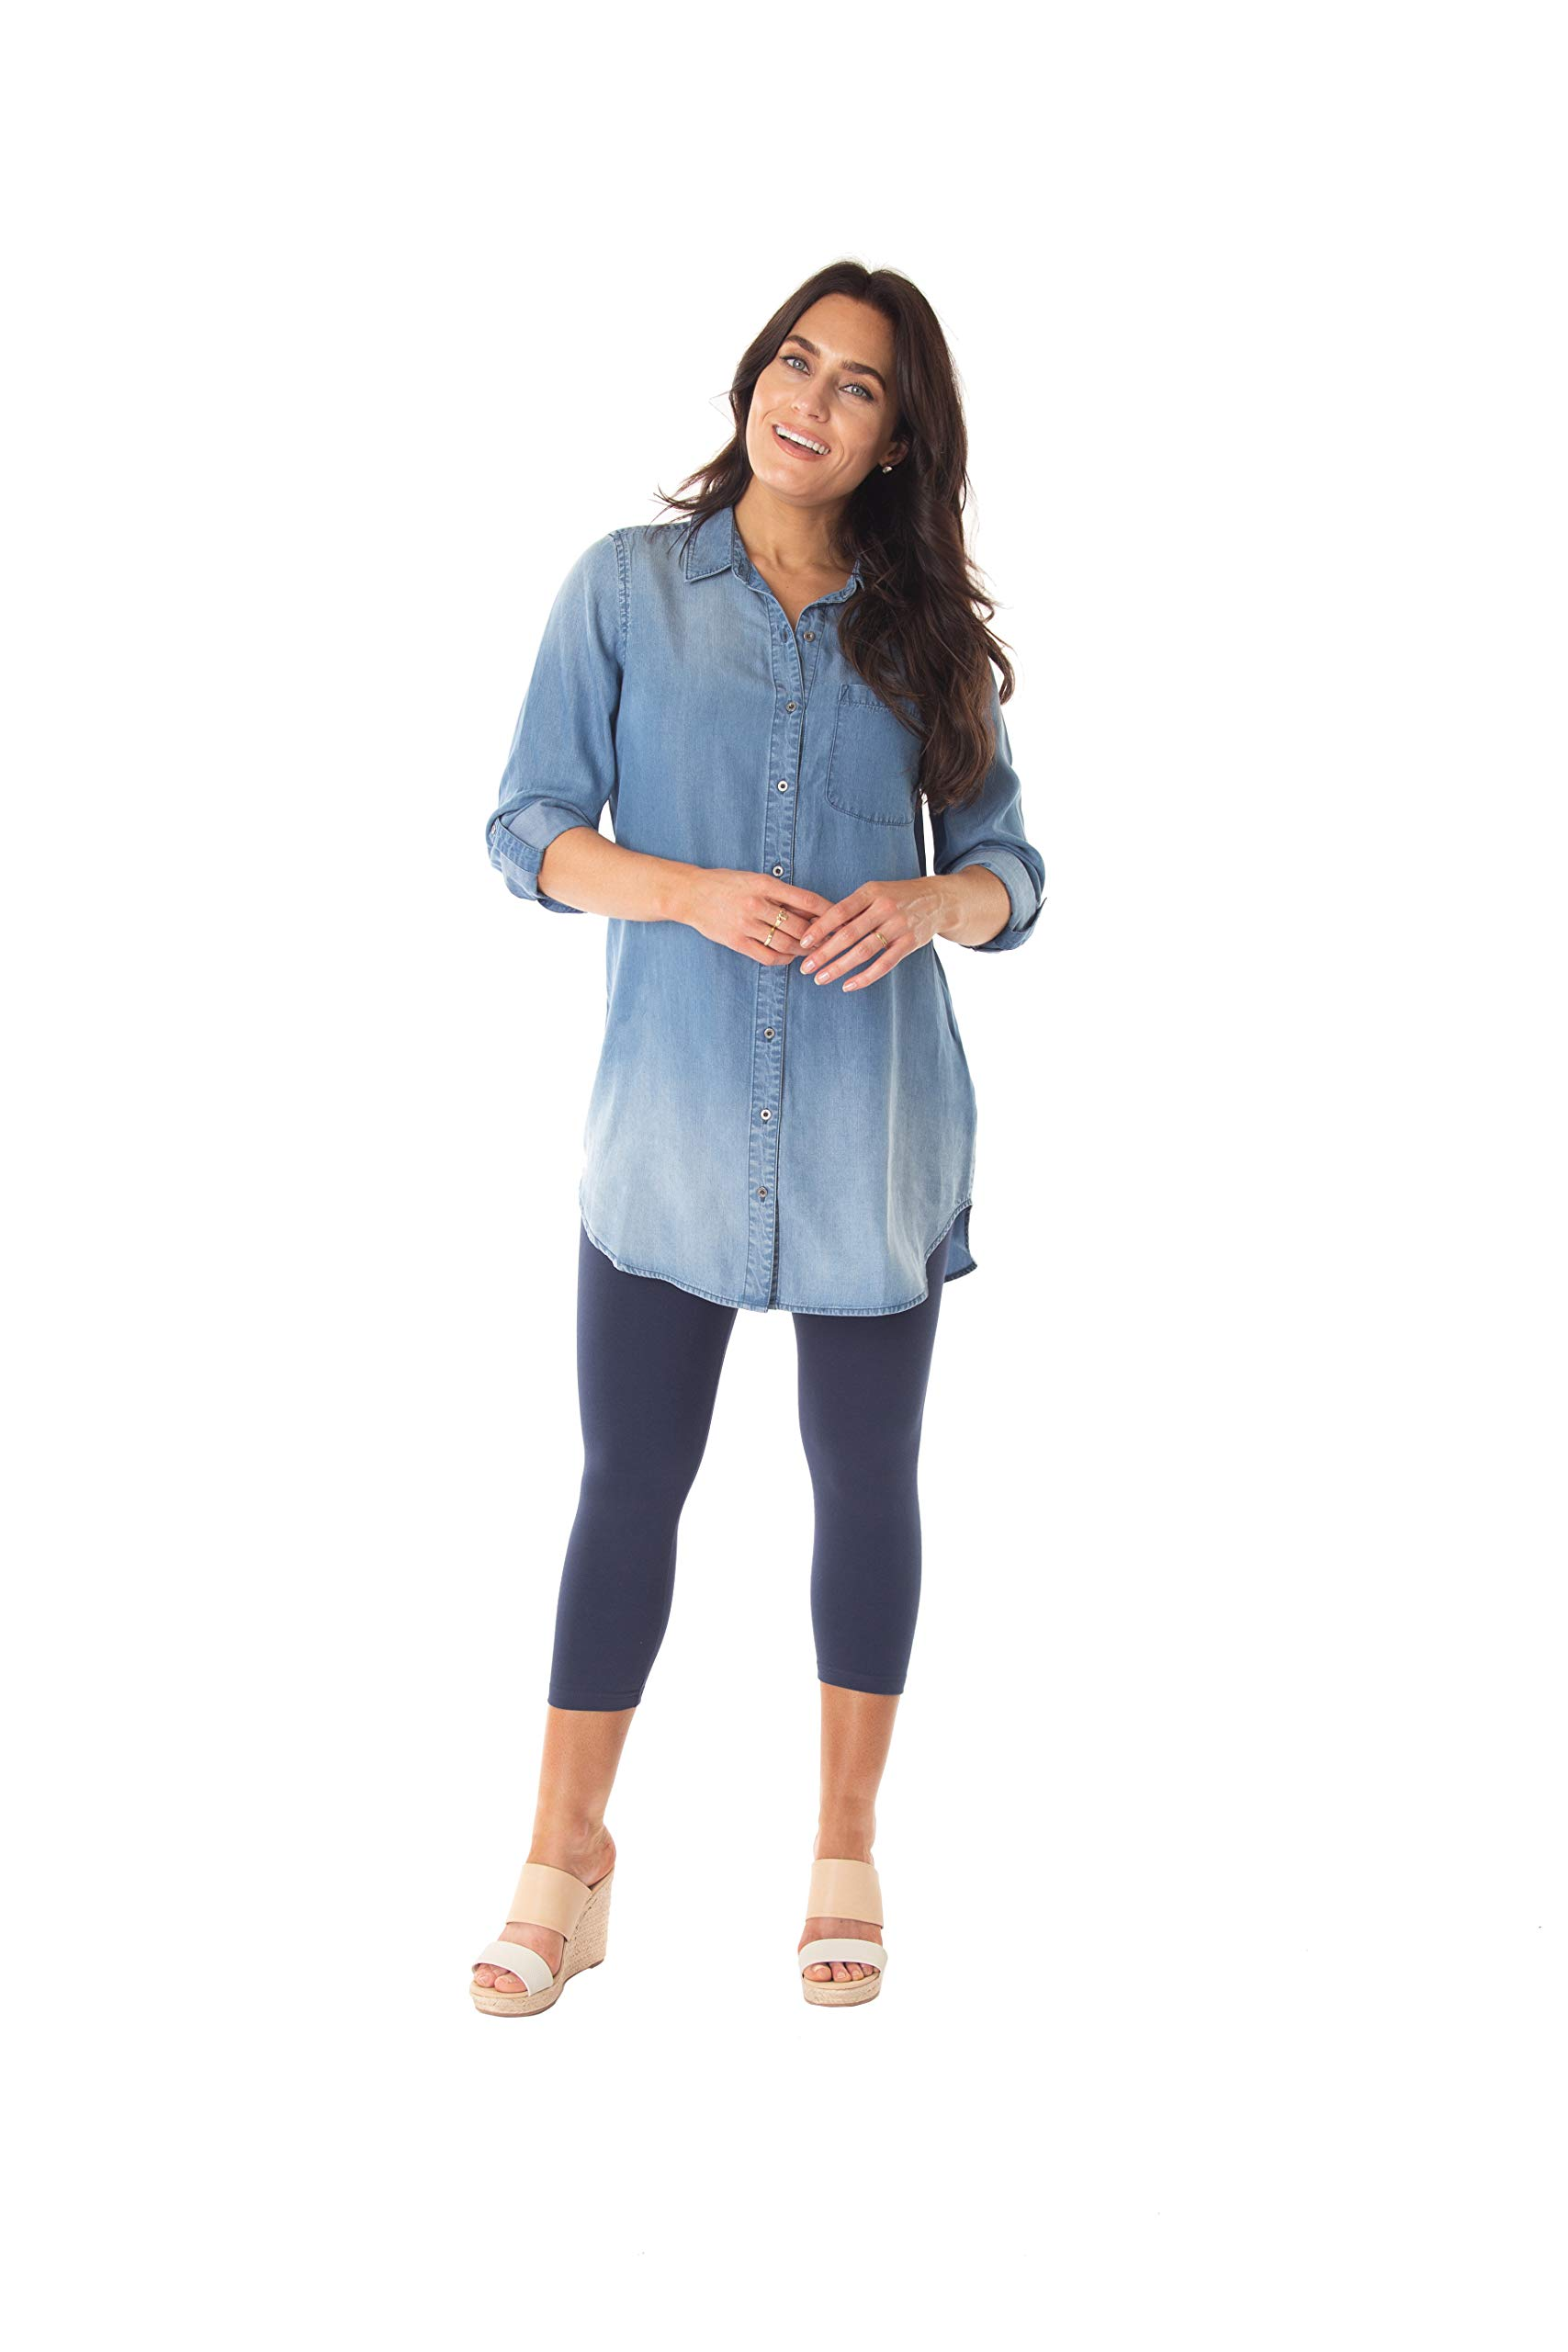 INTRO. Women's Lyocell Denim Convertible Roll Tab Sleeve Collared Split Neck Button Down Tunic Shirt Medium by INTRO.